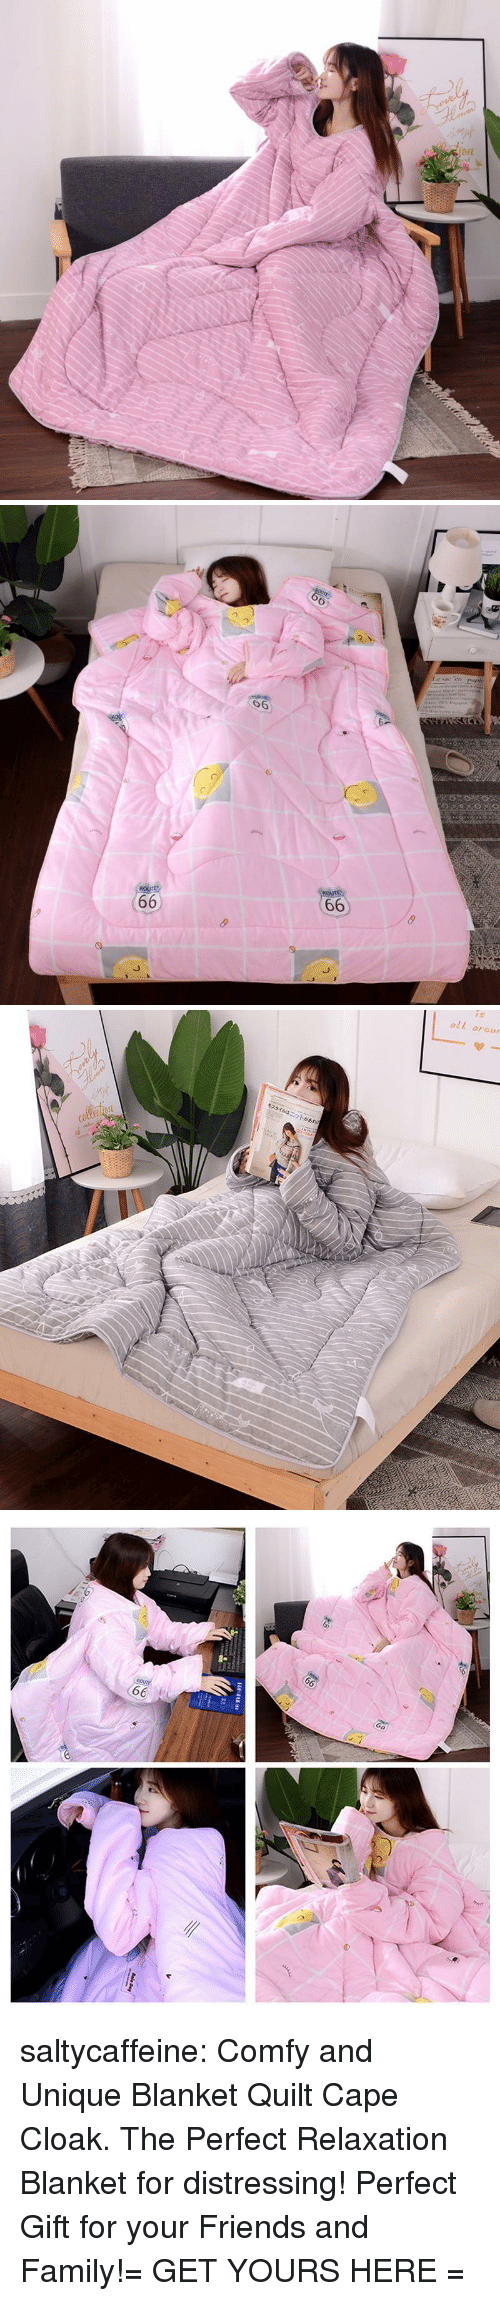 Family, Friends, and Target: 6  6   oll arour saltycaffeine:  Comfy and Unique Blanket Quilt Cape Cloak. The Perfect Relaxation Blanket for distressing! Perfect Gift for your Friends and Family!= GET YOURS HERE =